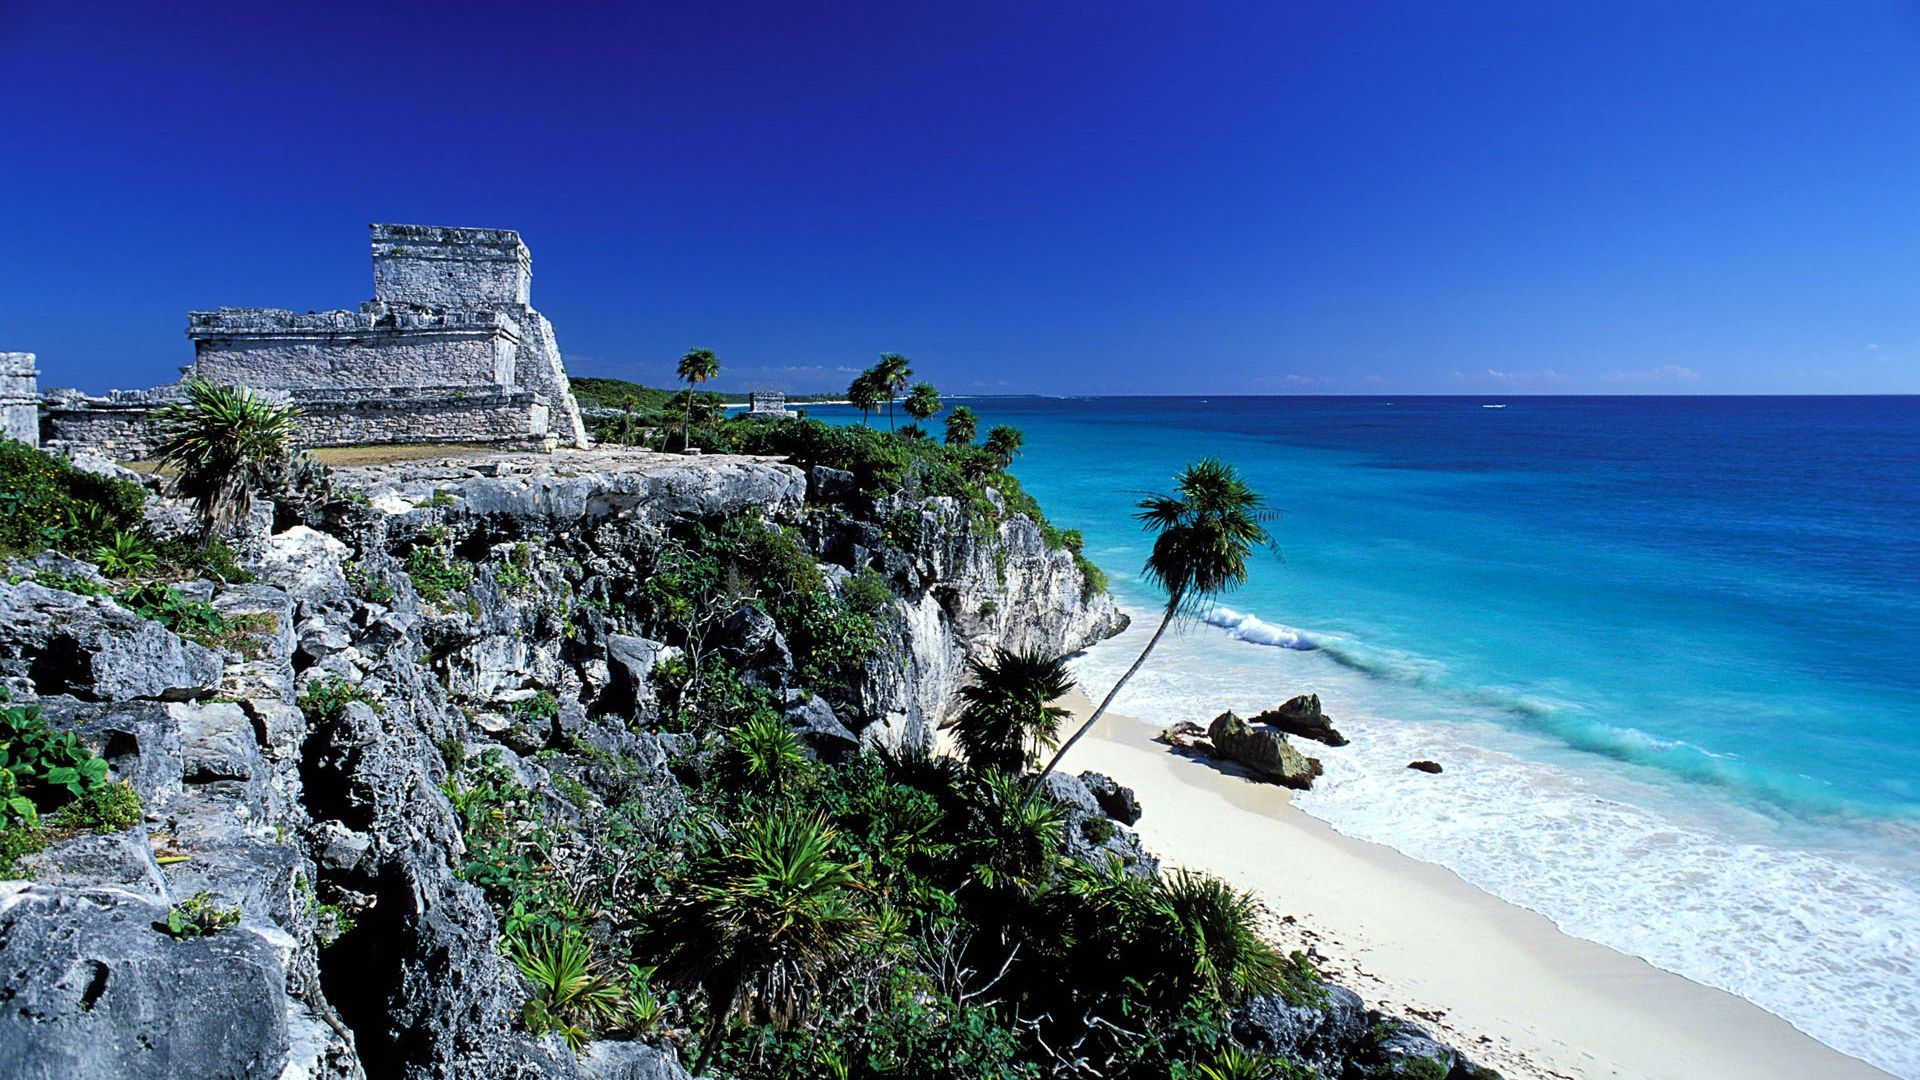 Tulum Google Search Tulum Mexico Mexico Travel Tulum Ruins